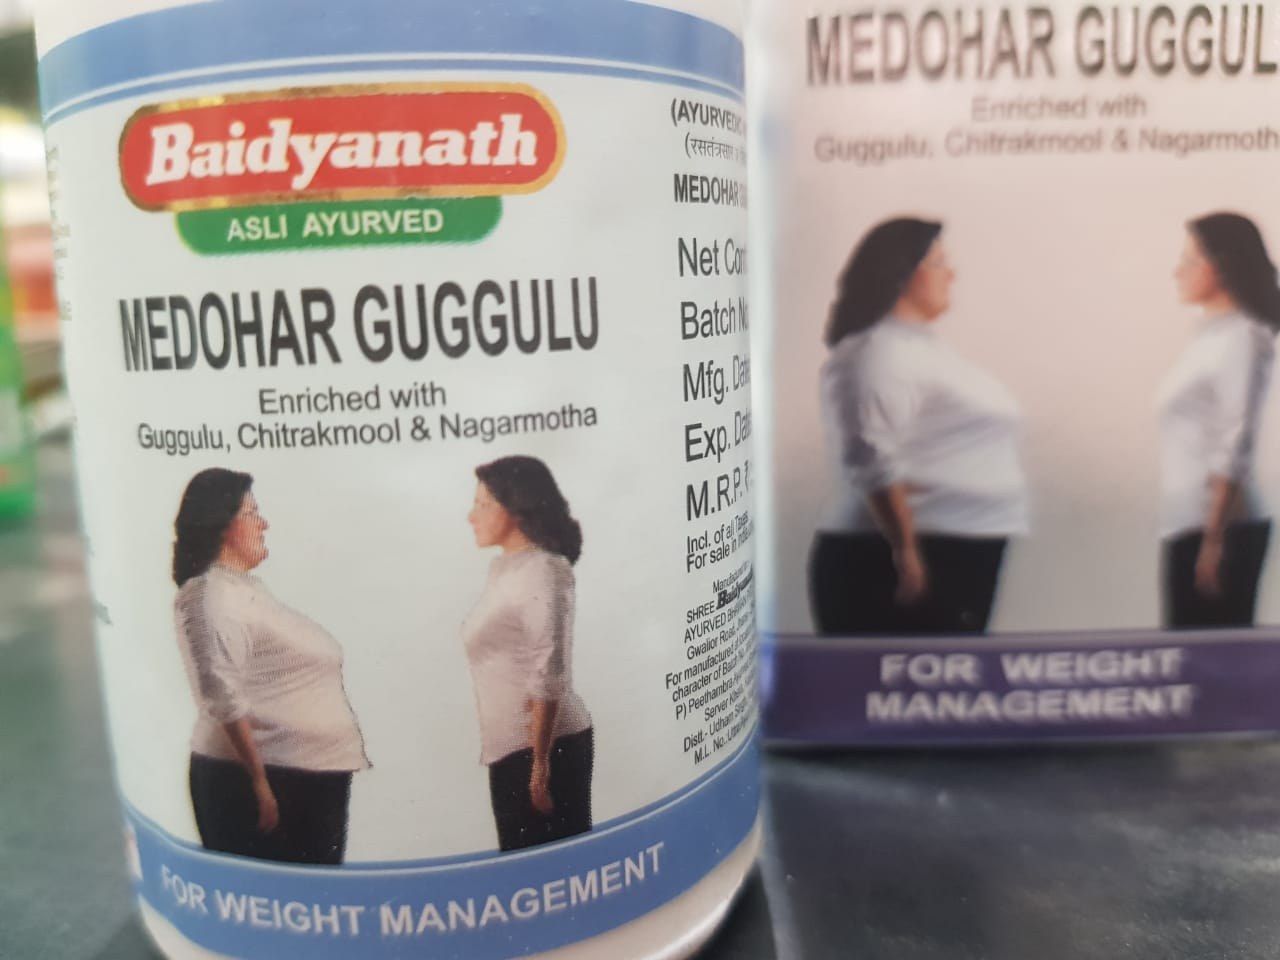 Baidyanath Medohar Guggulu-Awesome product-By poonam_kakkar